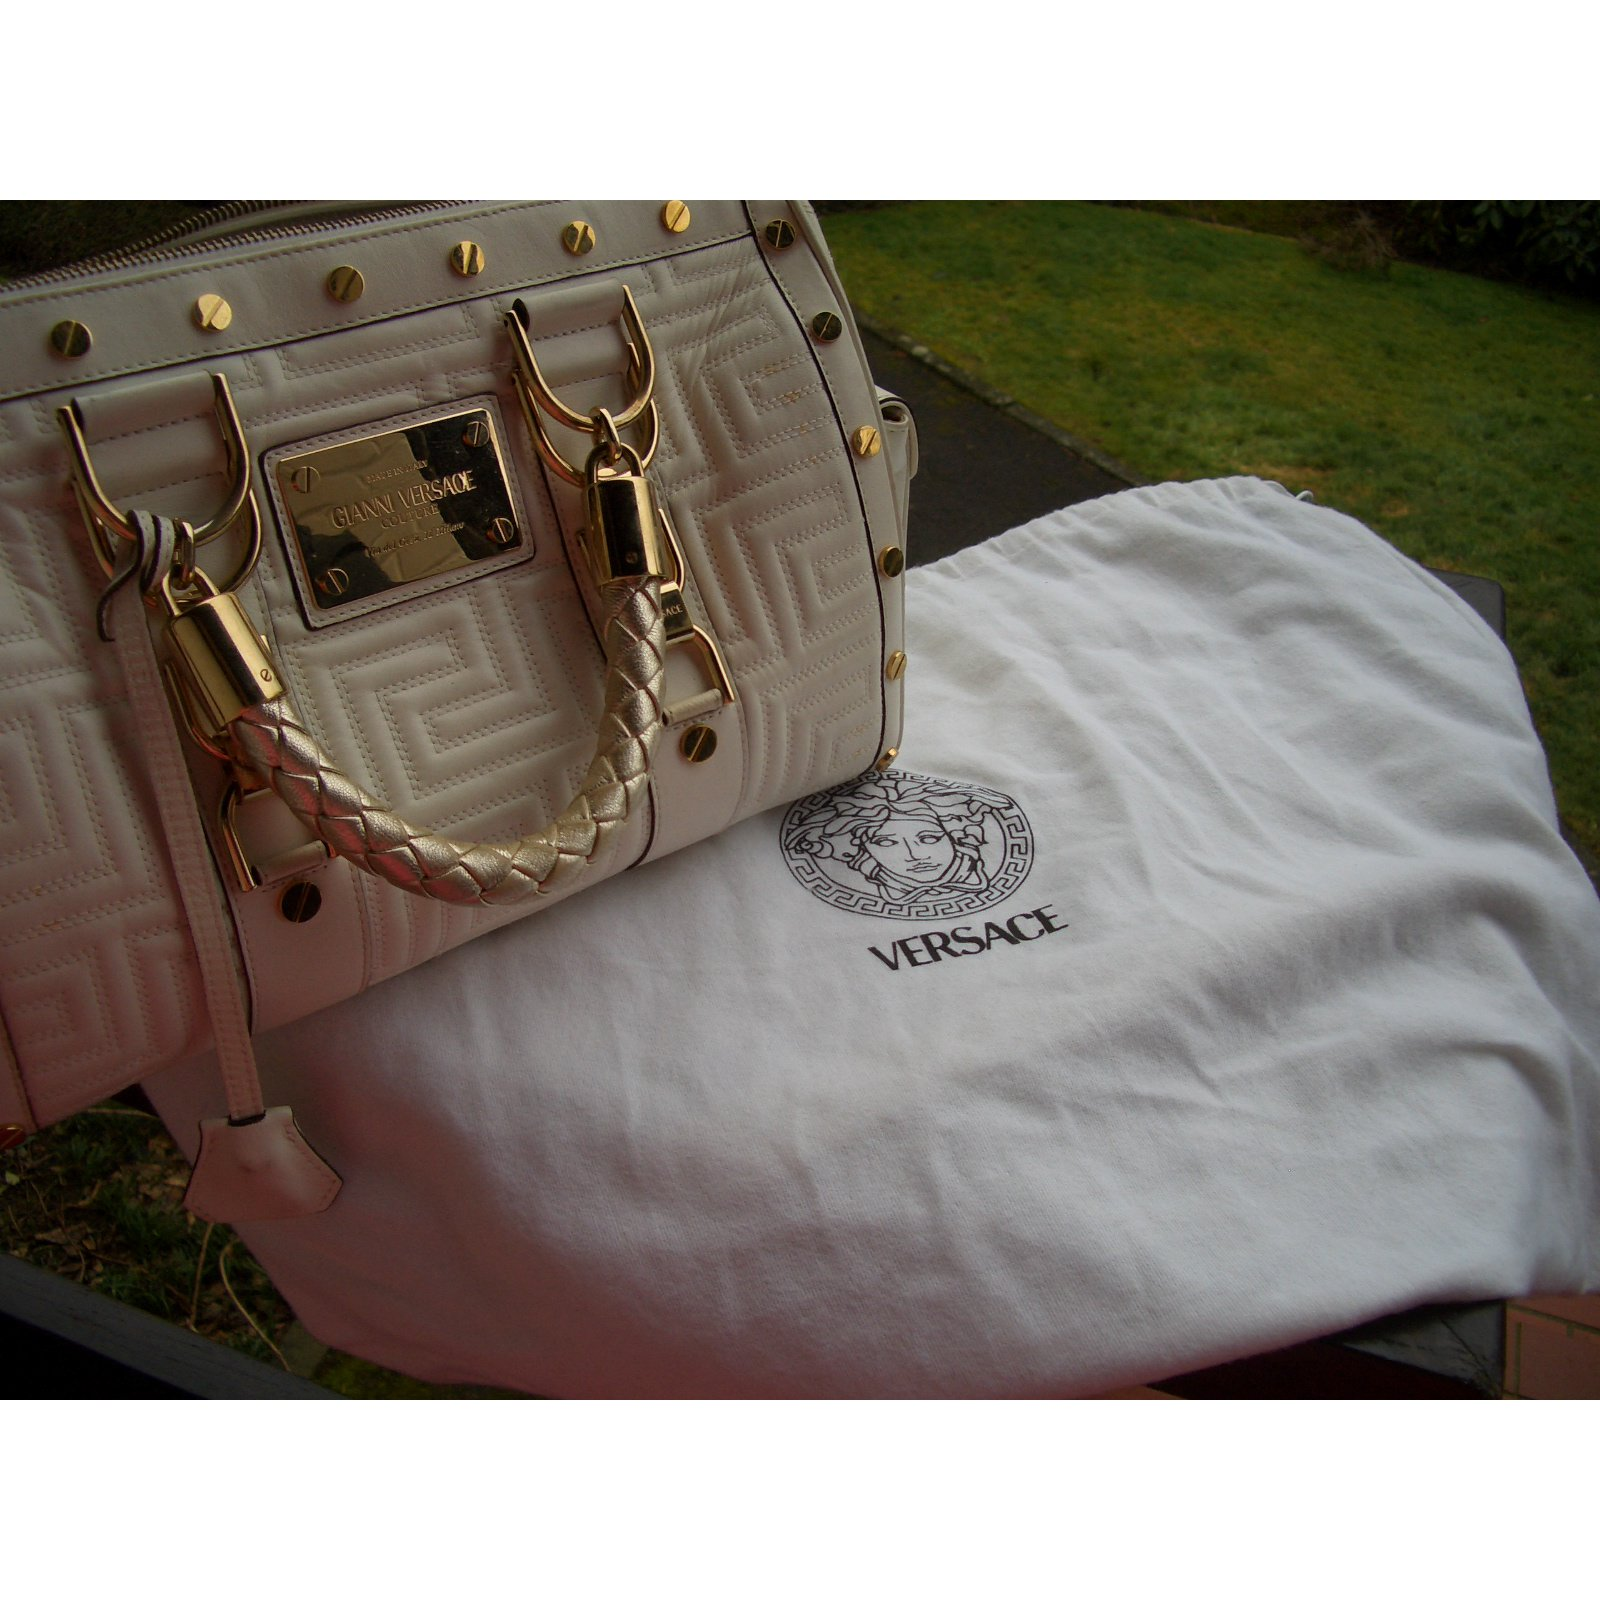 Facebook · Pin This. Gianni Versace Handbag Handbags Leather Cream ref.32645 a7329098369b4